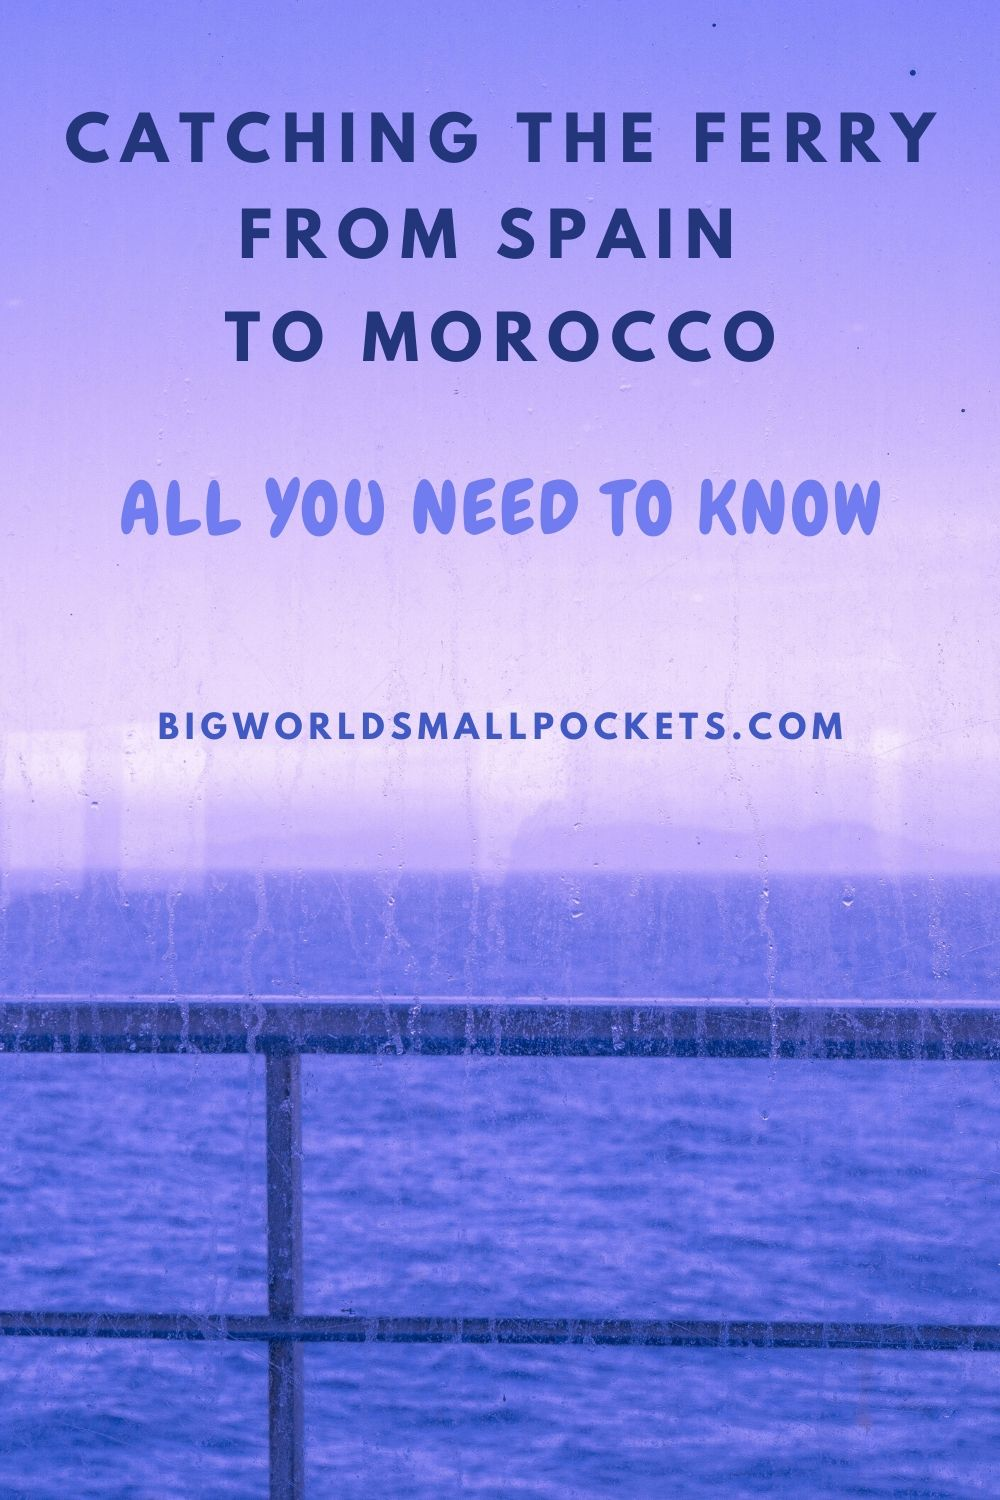 All You Need to Know About Catching the Ferry from Spain to Morocco